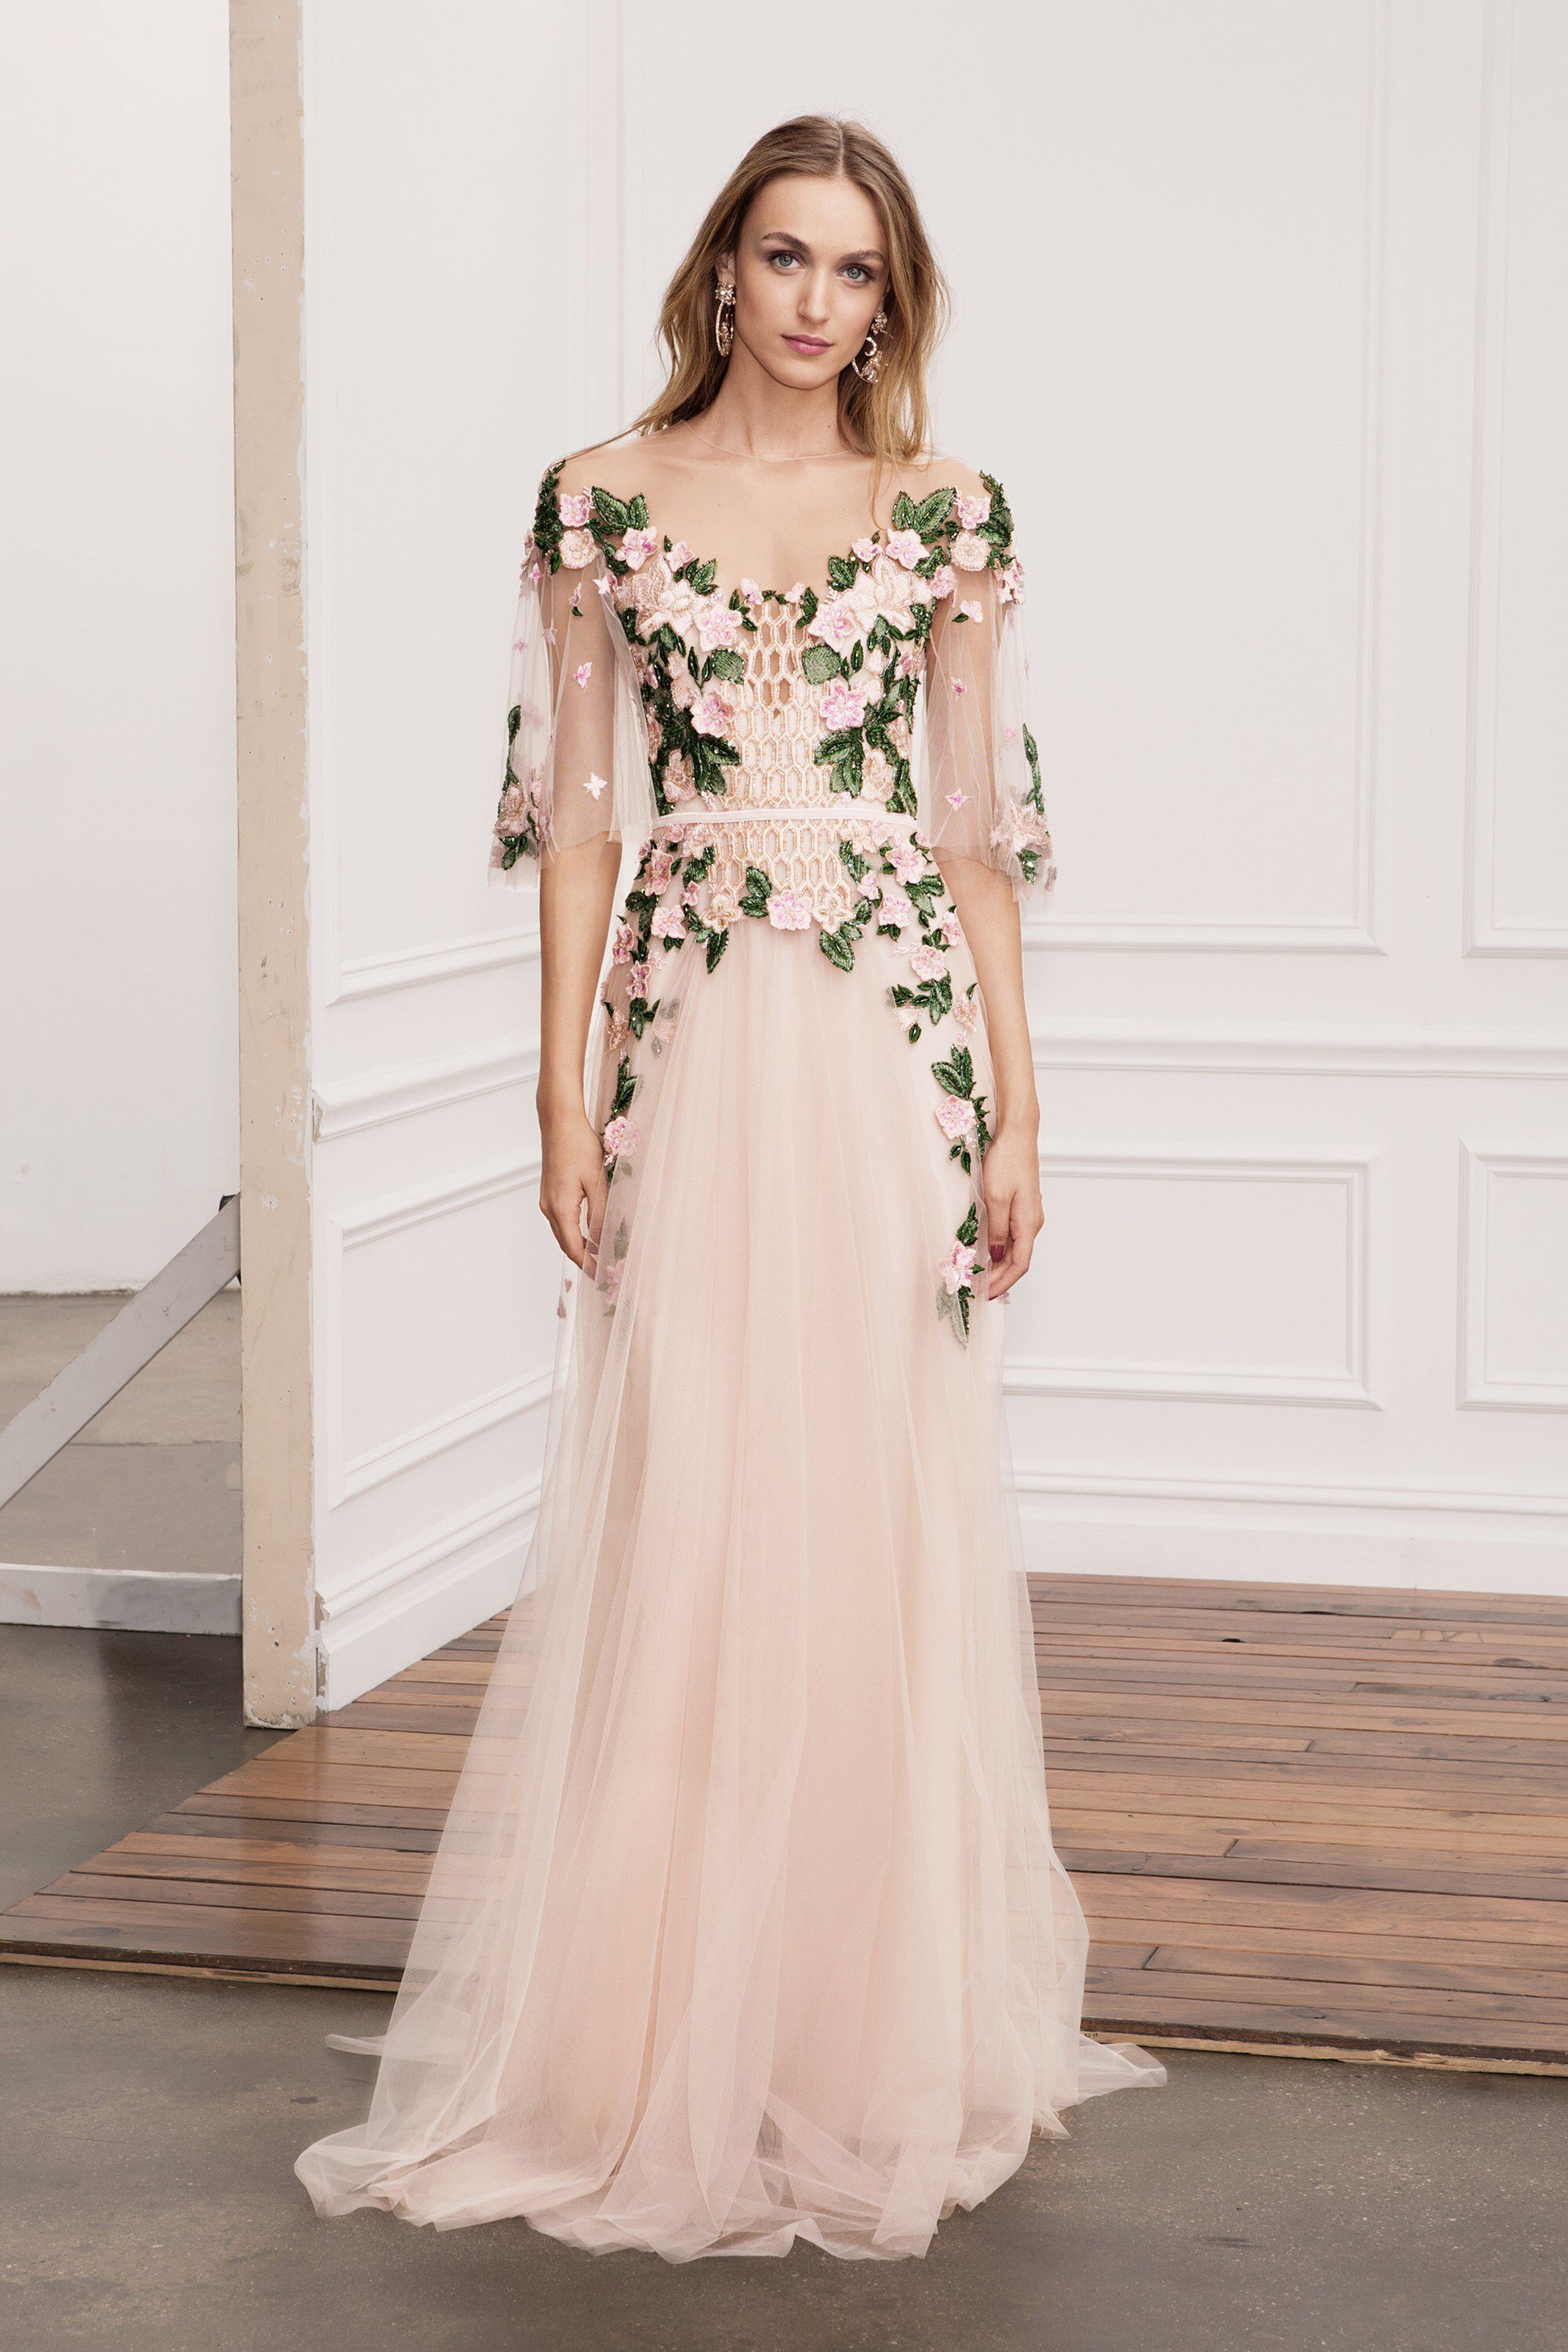 f3caddd2eb Marchesa Notte Spring 2018 RTW: Ethereal blush gown with intricate floral  details on the bodice.